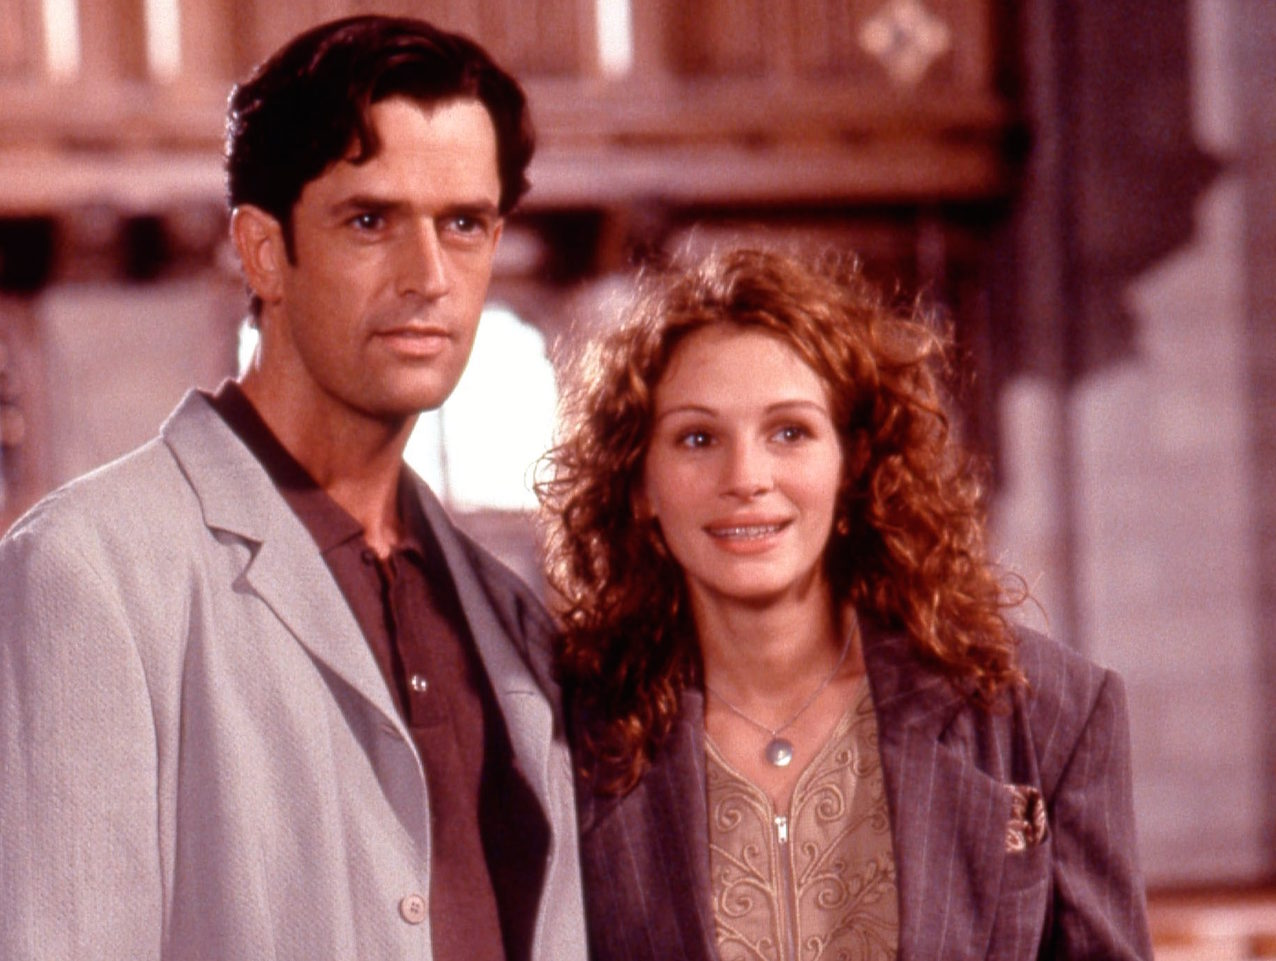 Scene from MY BEST FRIEND'S WEDDING, Rupert Everett, Julia Roberts, 1997, (c)TriStar Pictures/courtesy Everett Collection